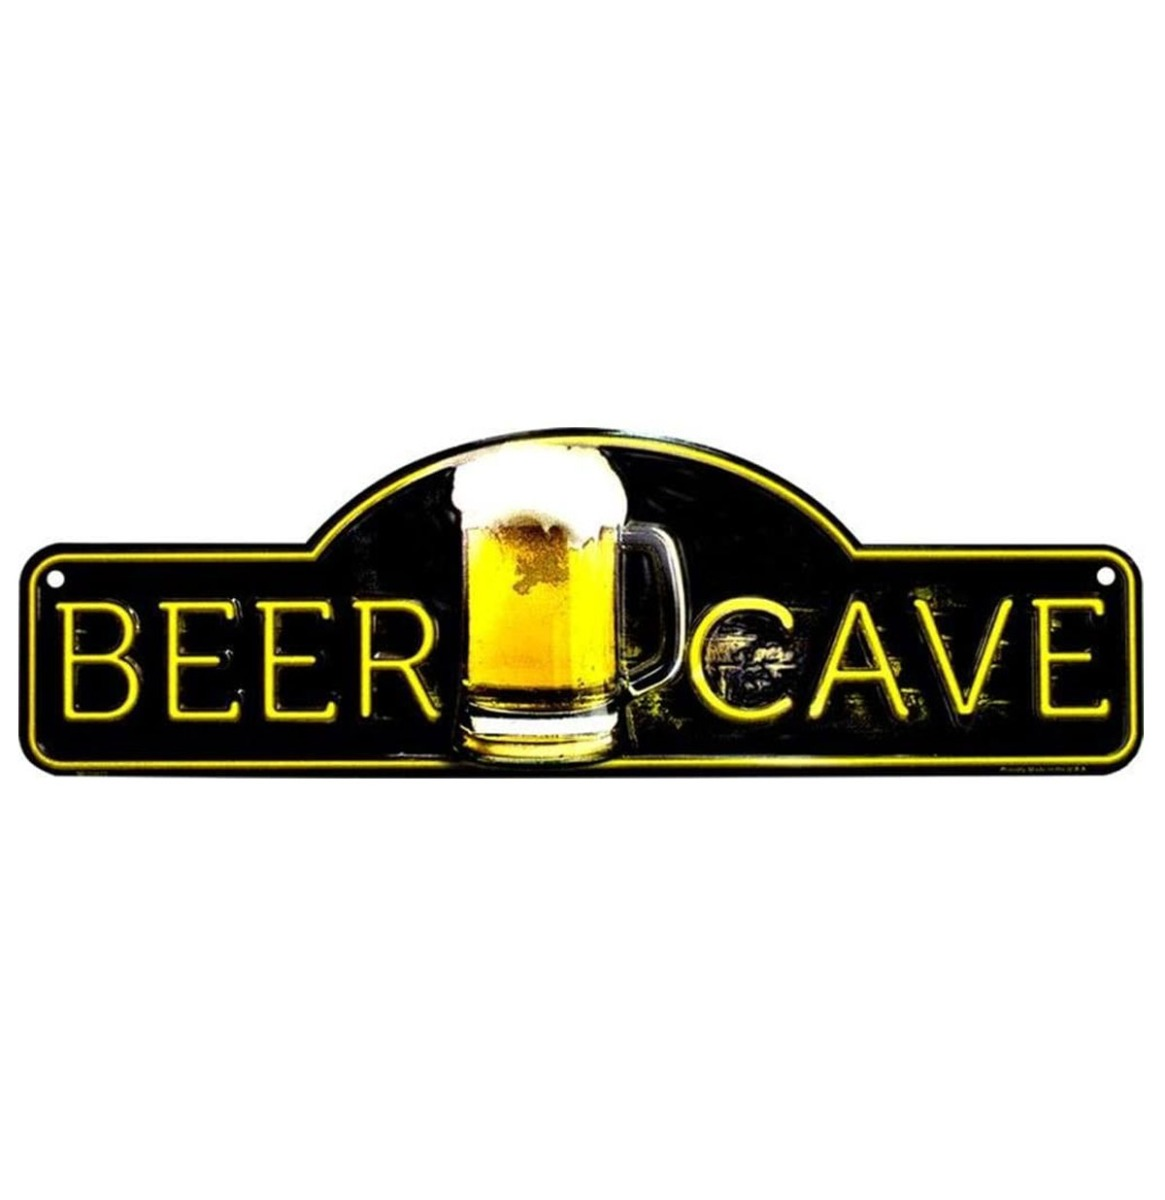 Beer Cave Bord 45,5 x 14,5 cm